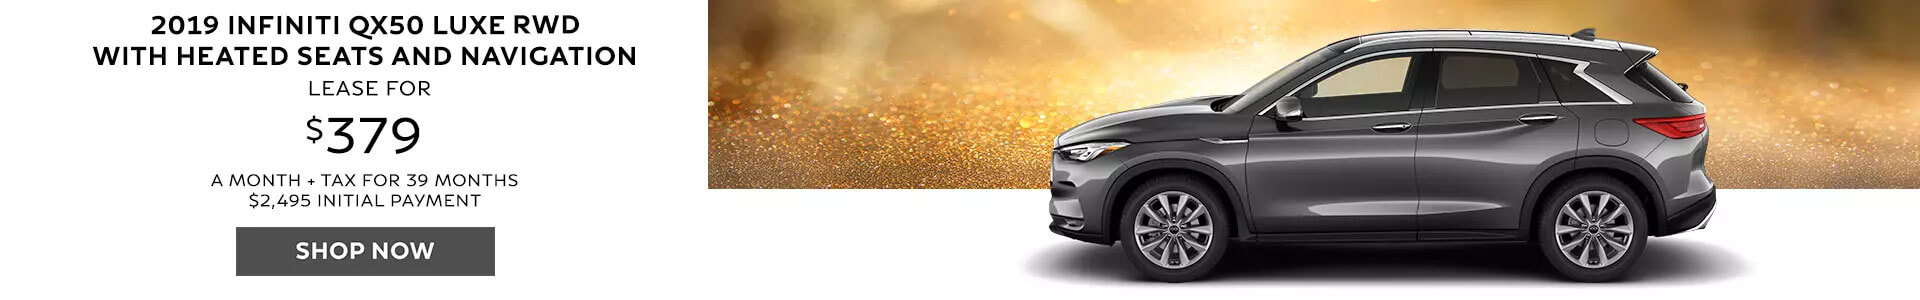 2019 QX50 - Lease for $379